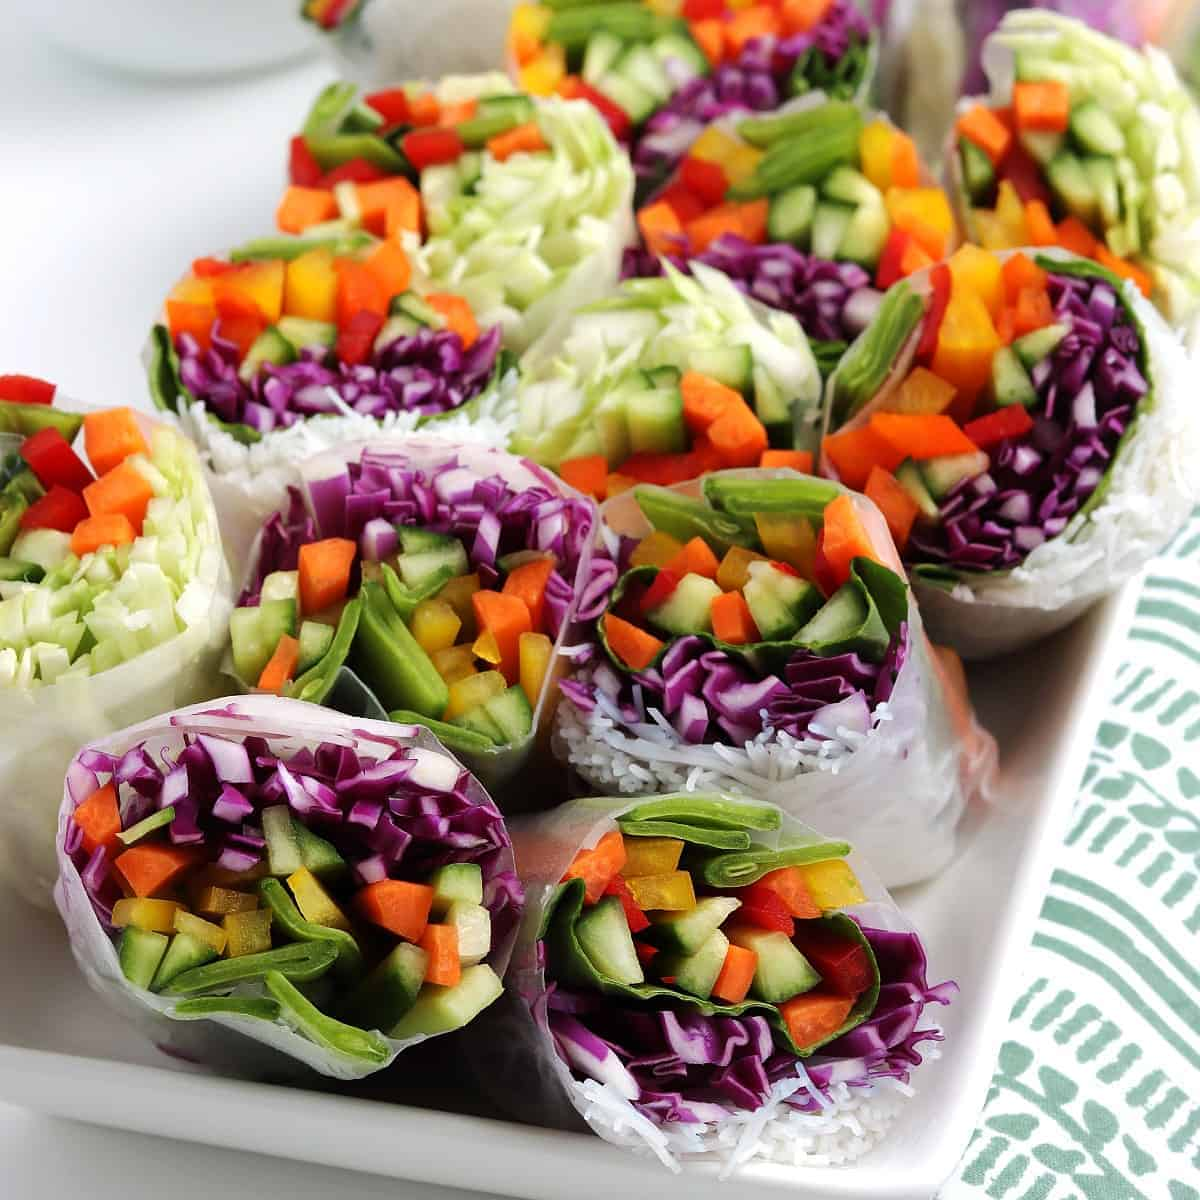 Sliced halves of summer rolls with lots of veggies & peanut dipping sauce.